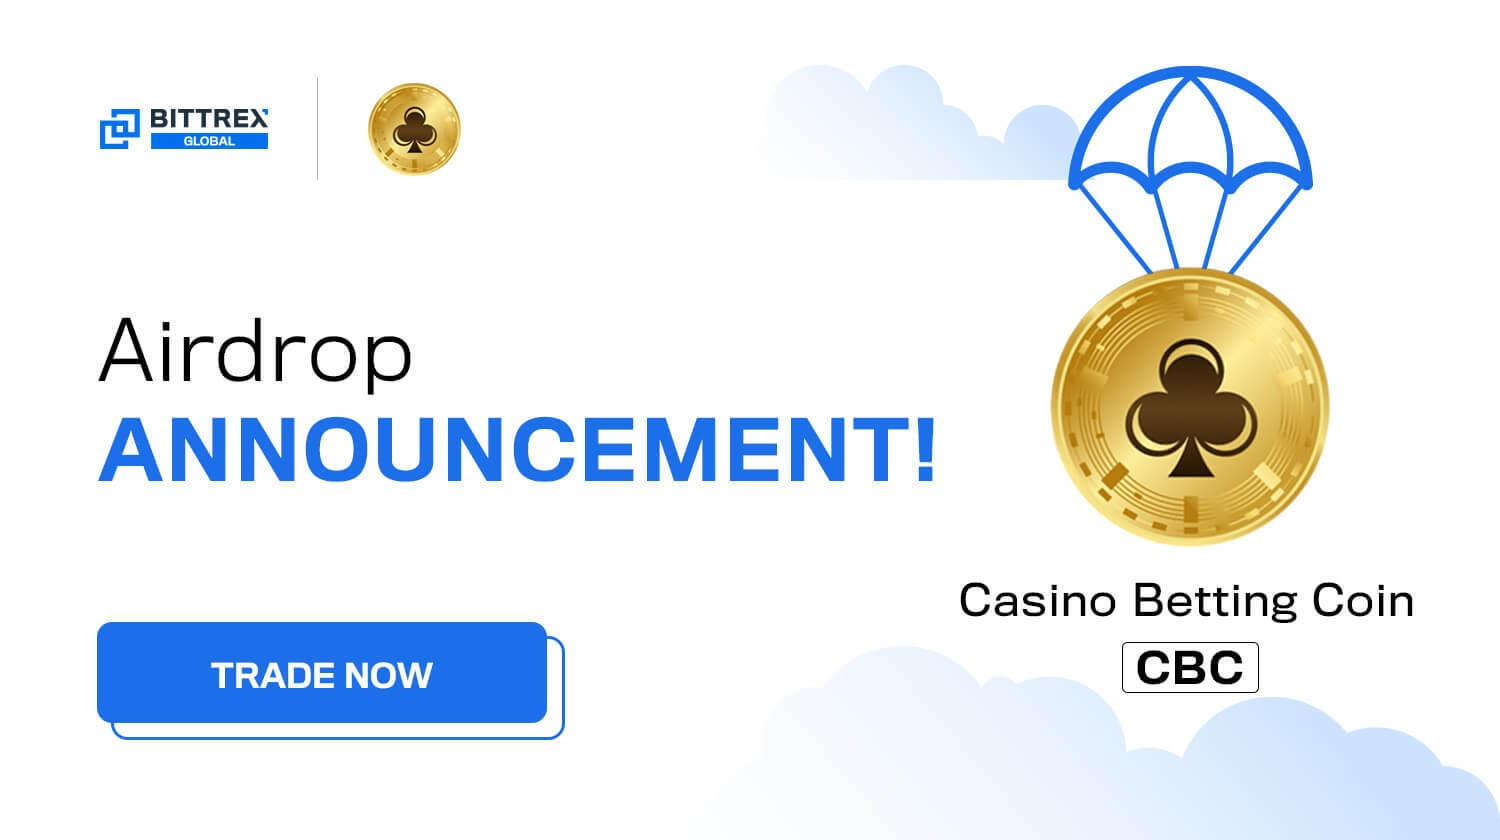 Airdrop: You could win a share of 85,000 CBC from Casino Betting Coin!